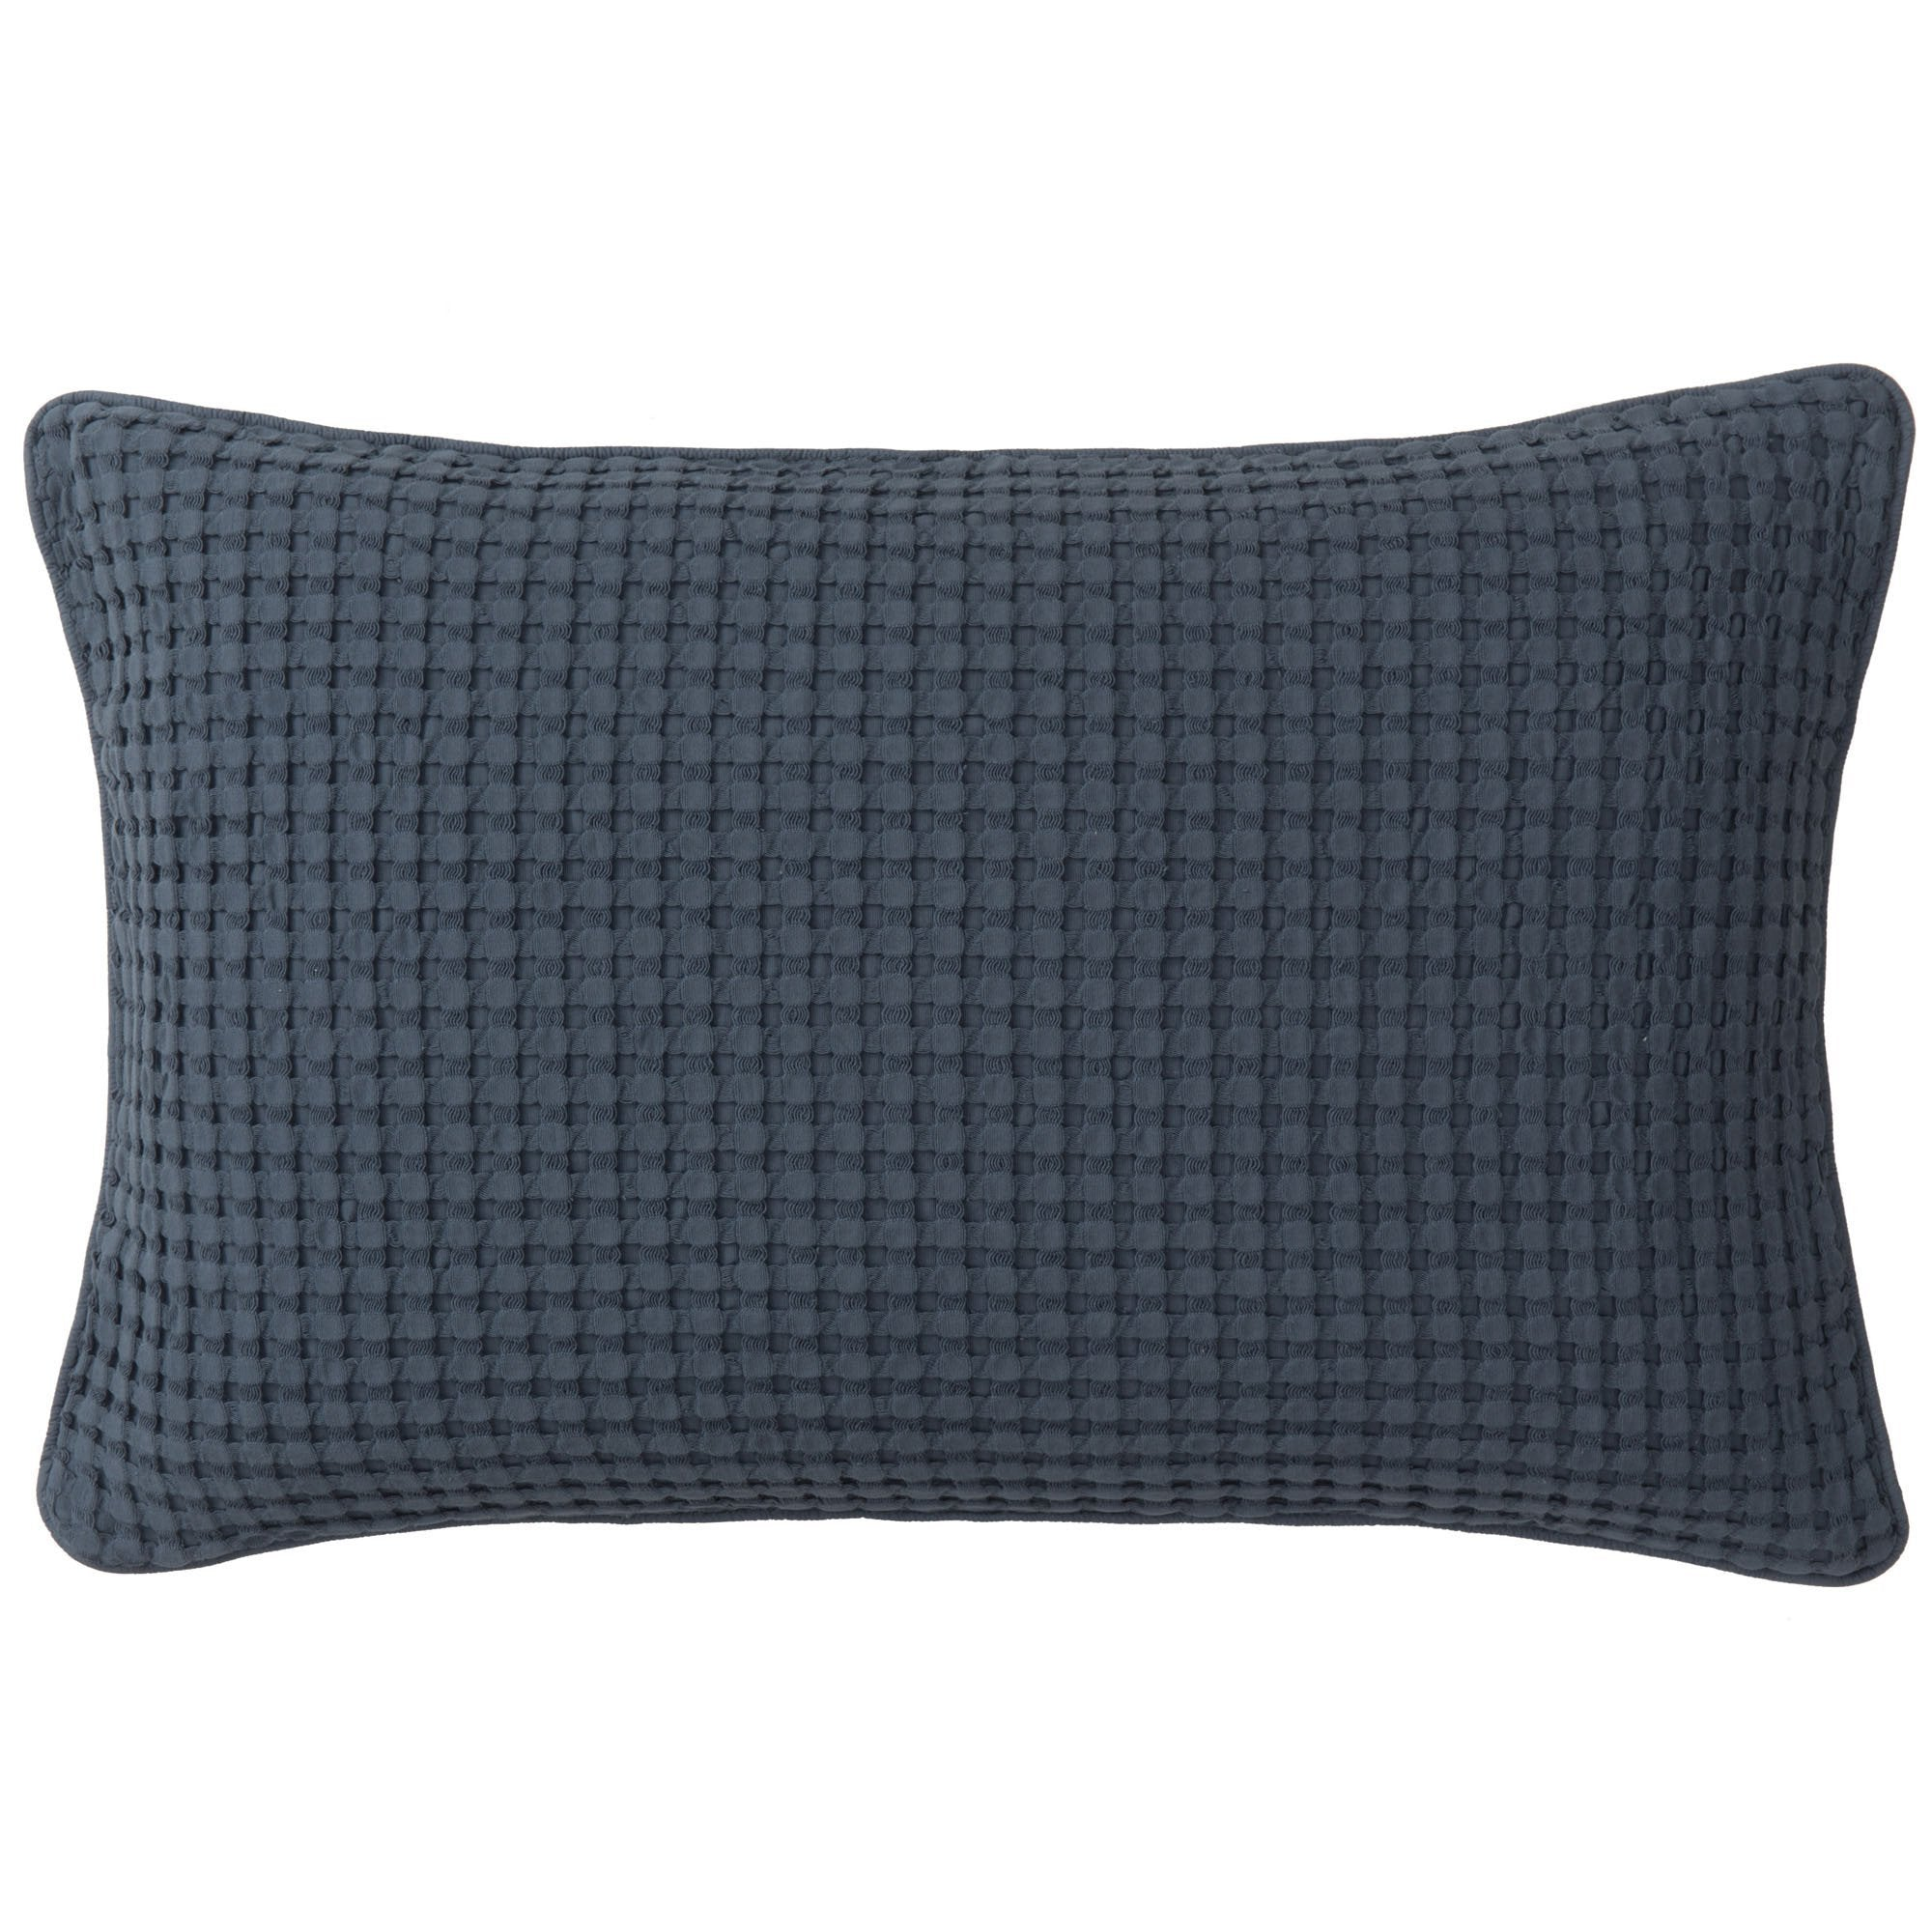 Veiros cushion cover, blue grey, 100% cotton